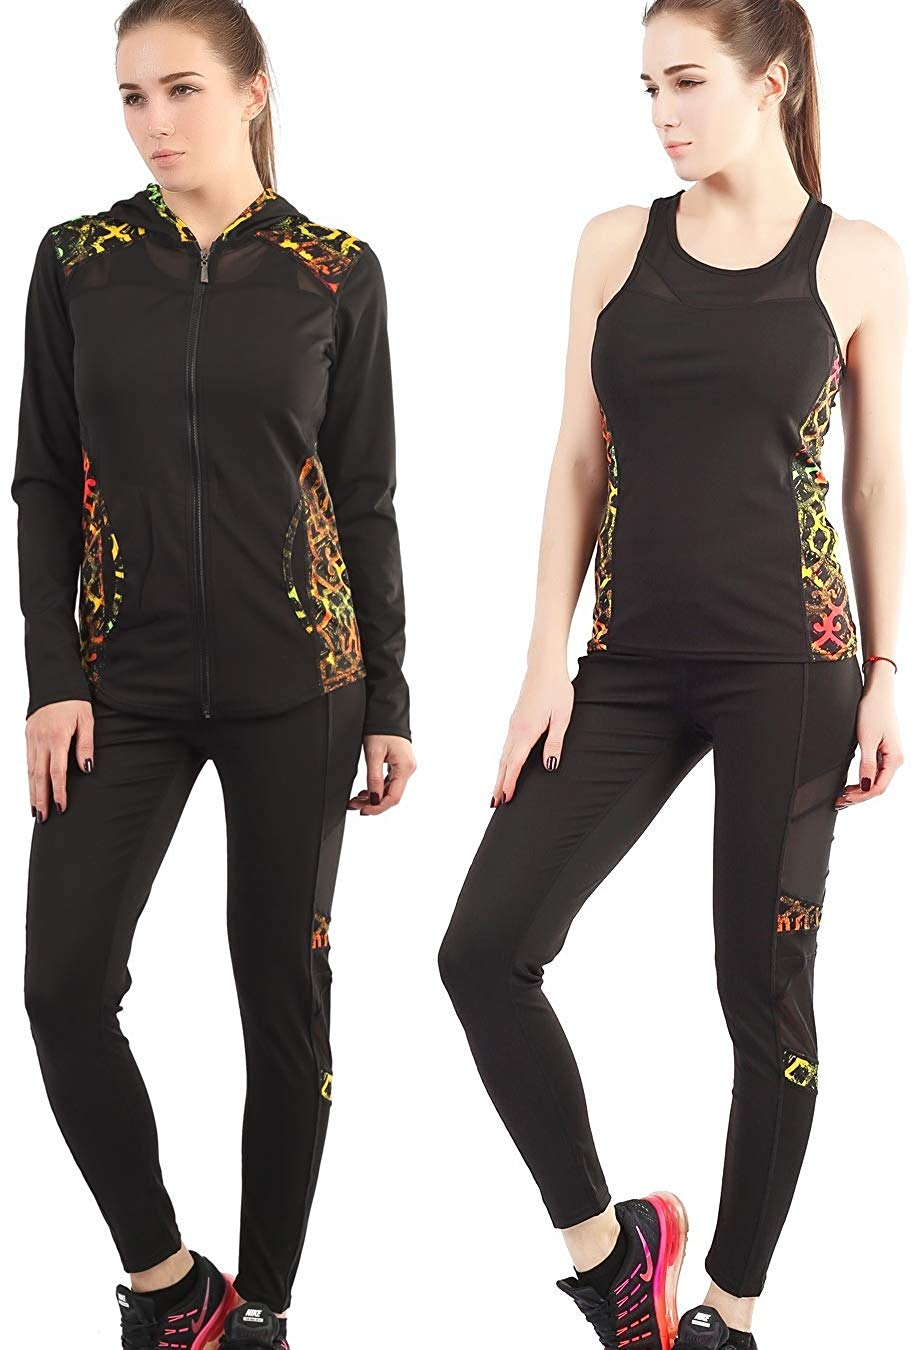 9d372f77a3f Get Quotations · Active Wear Sets For Women-Workout Clothes Tracksuit  Jacket+Top+Legging